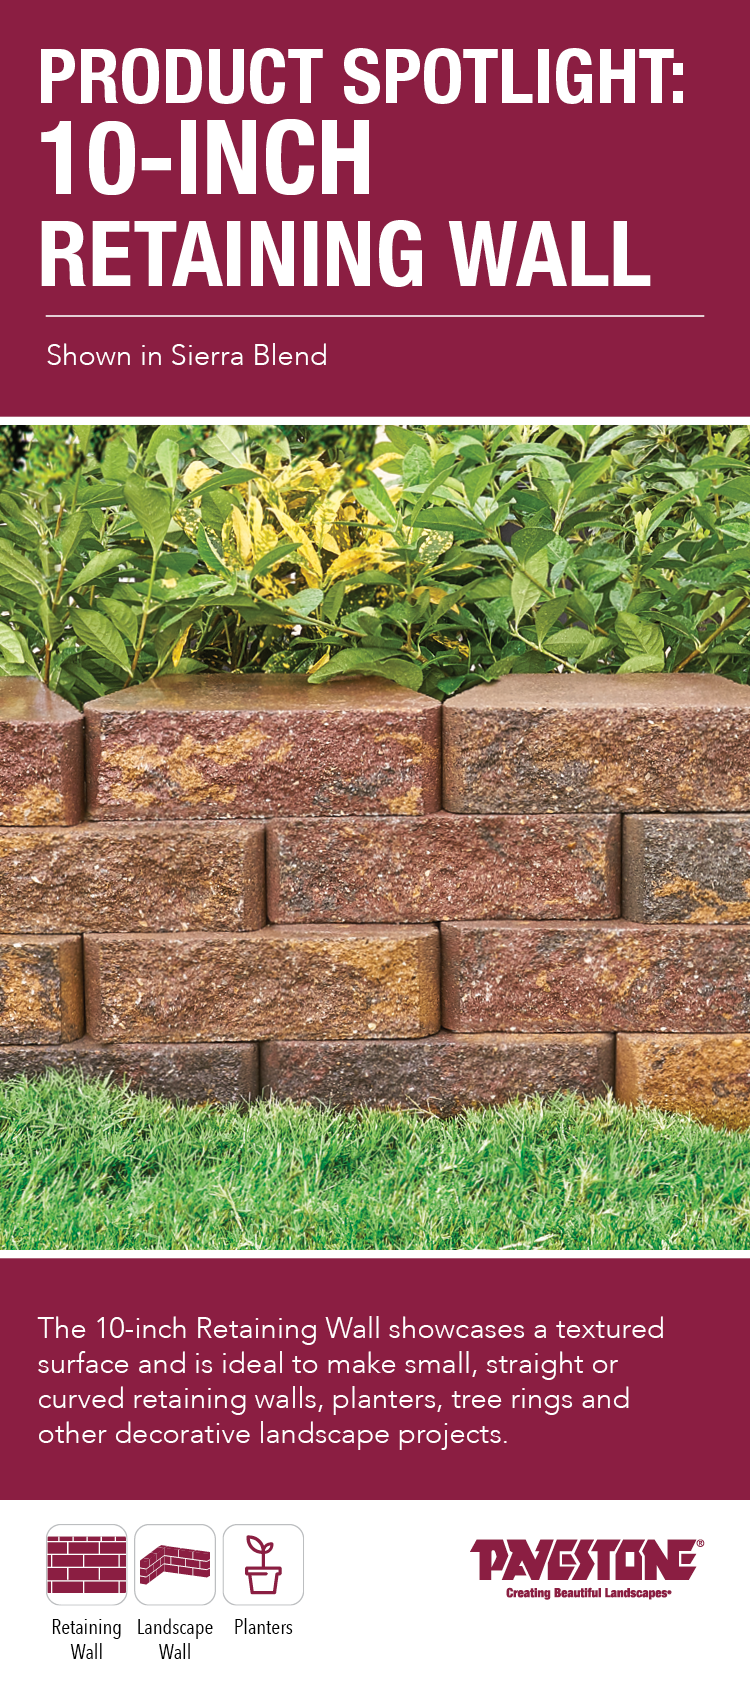 Product Spotlight 10 Inch Retaining Wall Pavestoneco Pavestone 10inchwall Retainingwall Gardenwall Retaining Wall Landscape Projects Concrete Garden